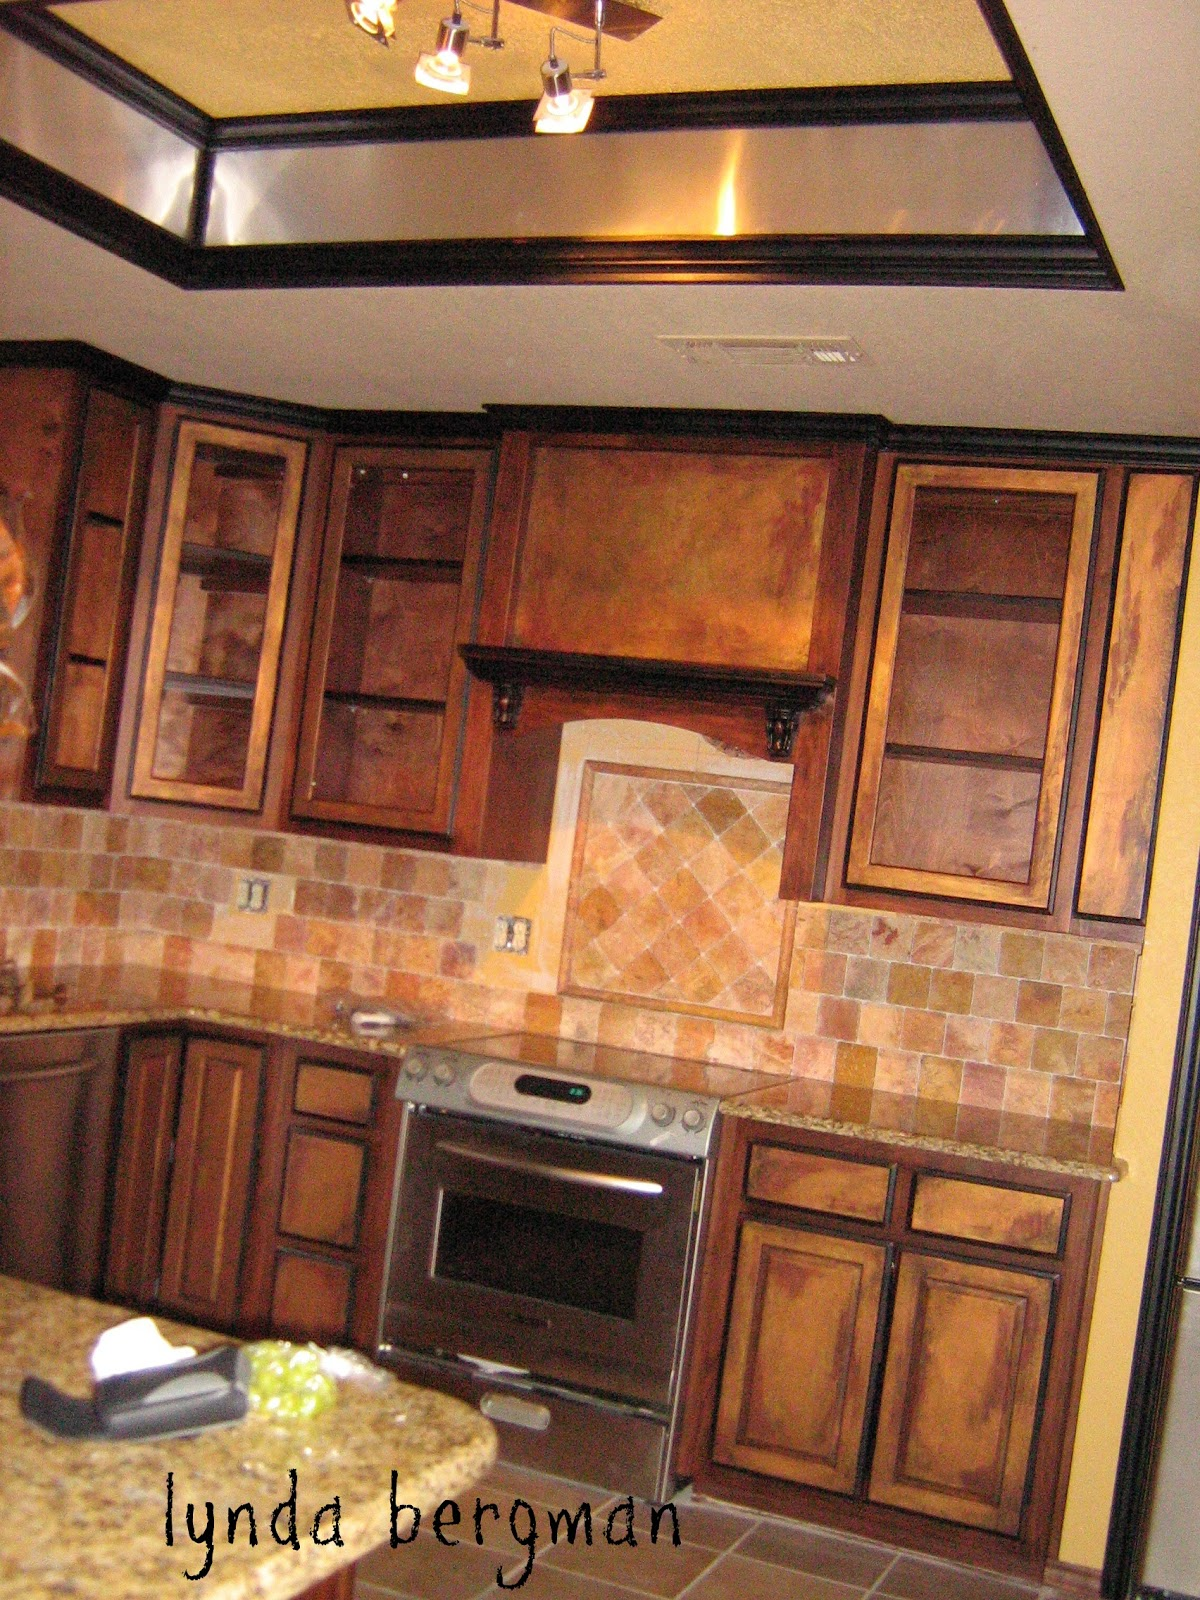 BLACK & AN  ANTIQUE COPPER  SPECIAL FINISH ON KITCHEN CABINETS